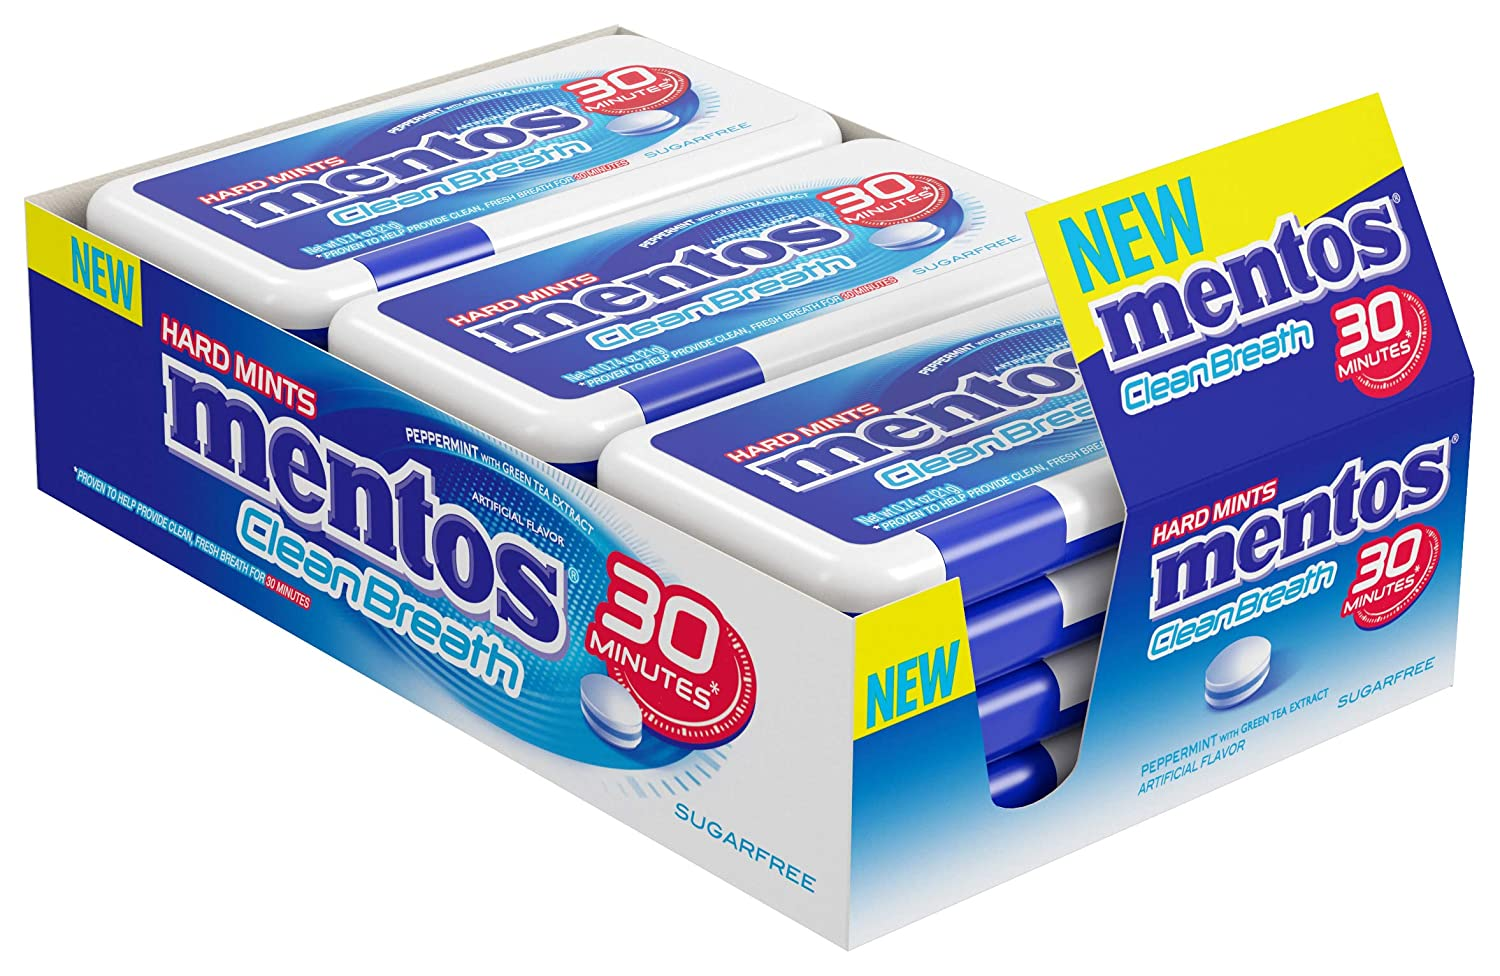 Mentos Clean Breath Hard Mints Sugar Free Candy, Peppermint, Bulk Pack of 12